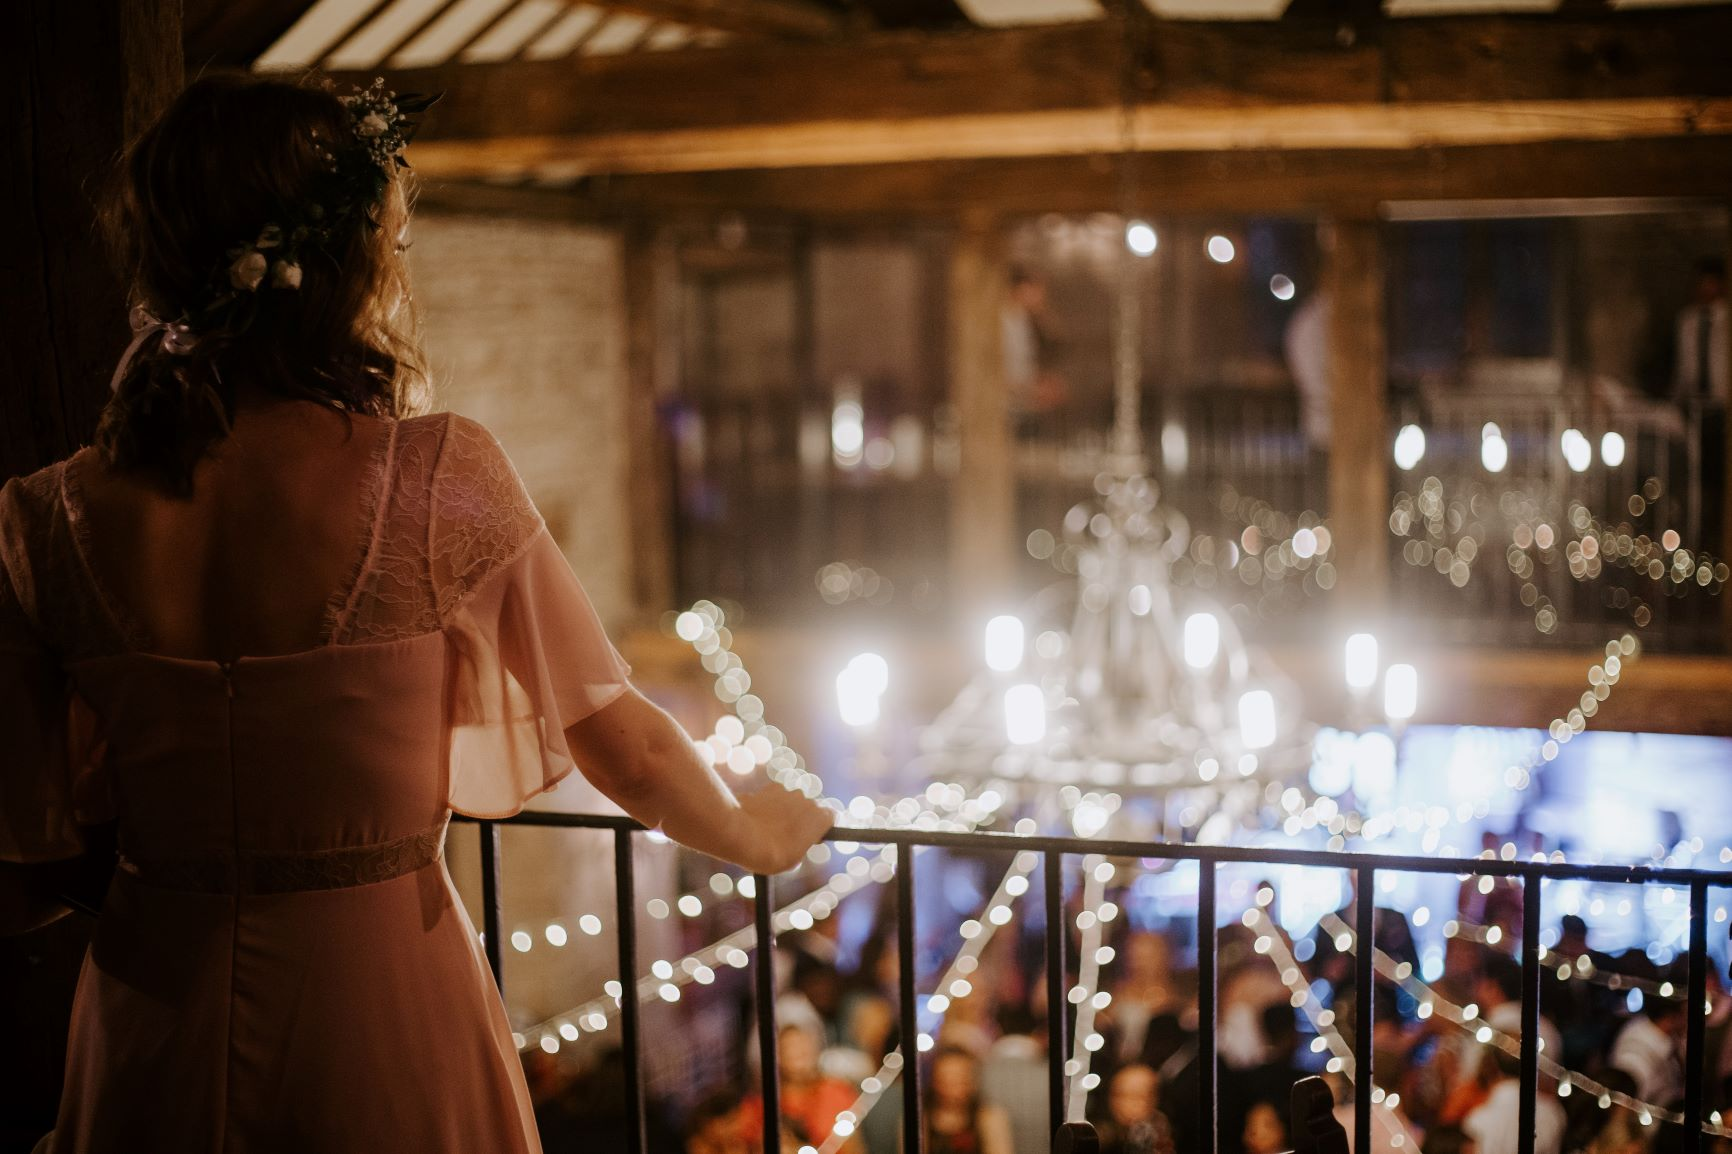 A bride is standing on a balcony looking away from the camera over a room laid out for a reception